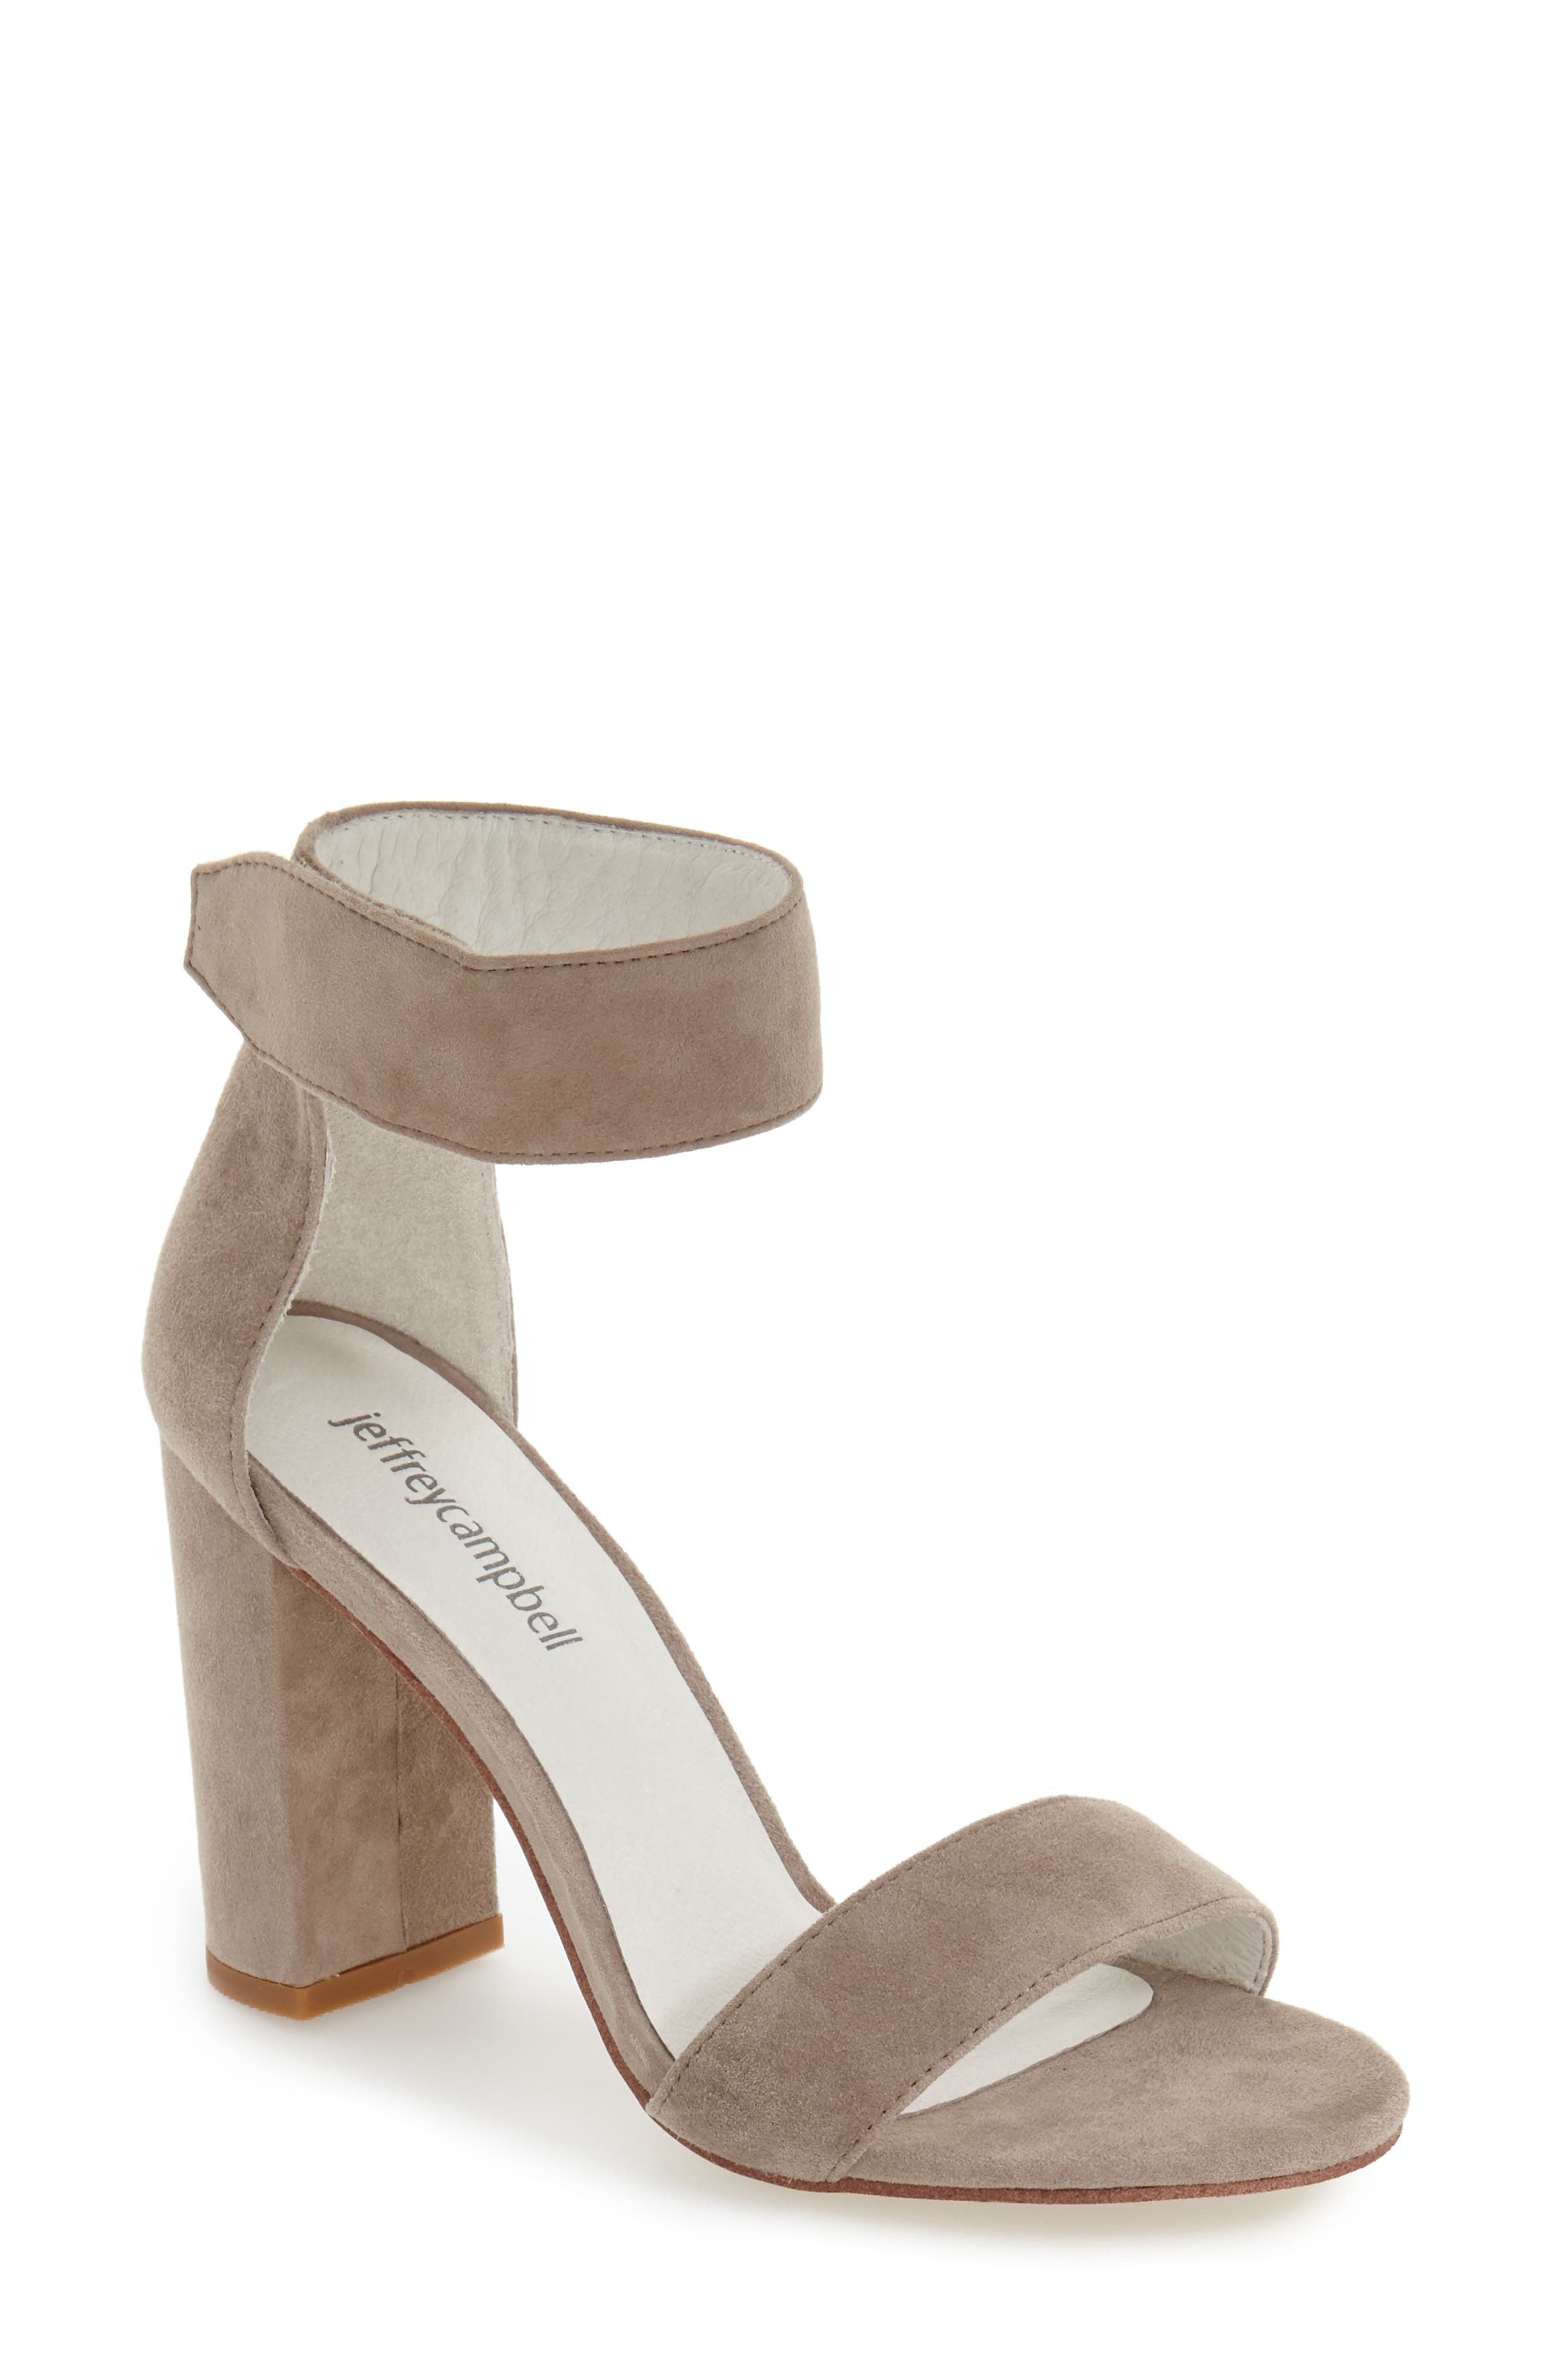 JEFFREY CAMPBELL, Lindsay Ankle Strap Sandal, Main thumbnail 1, color, TAUPE SUEDE